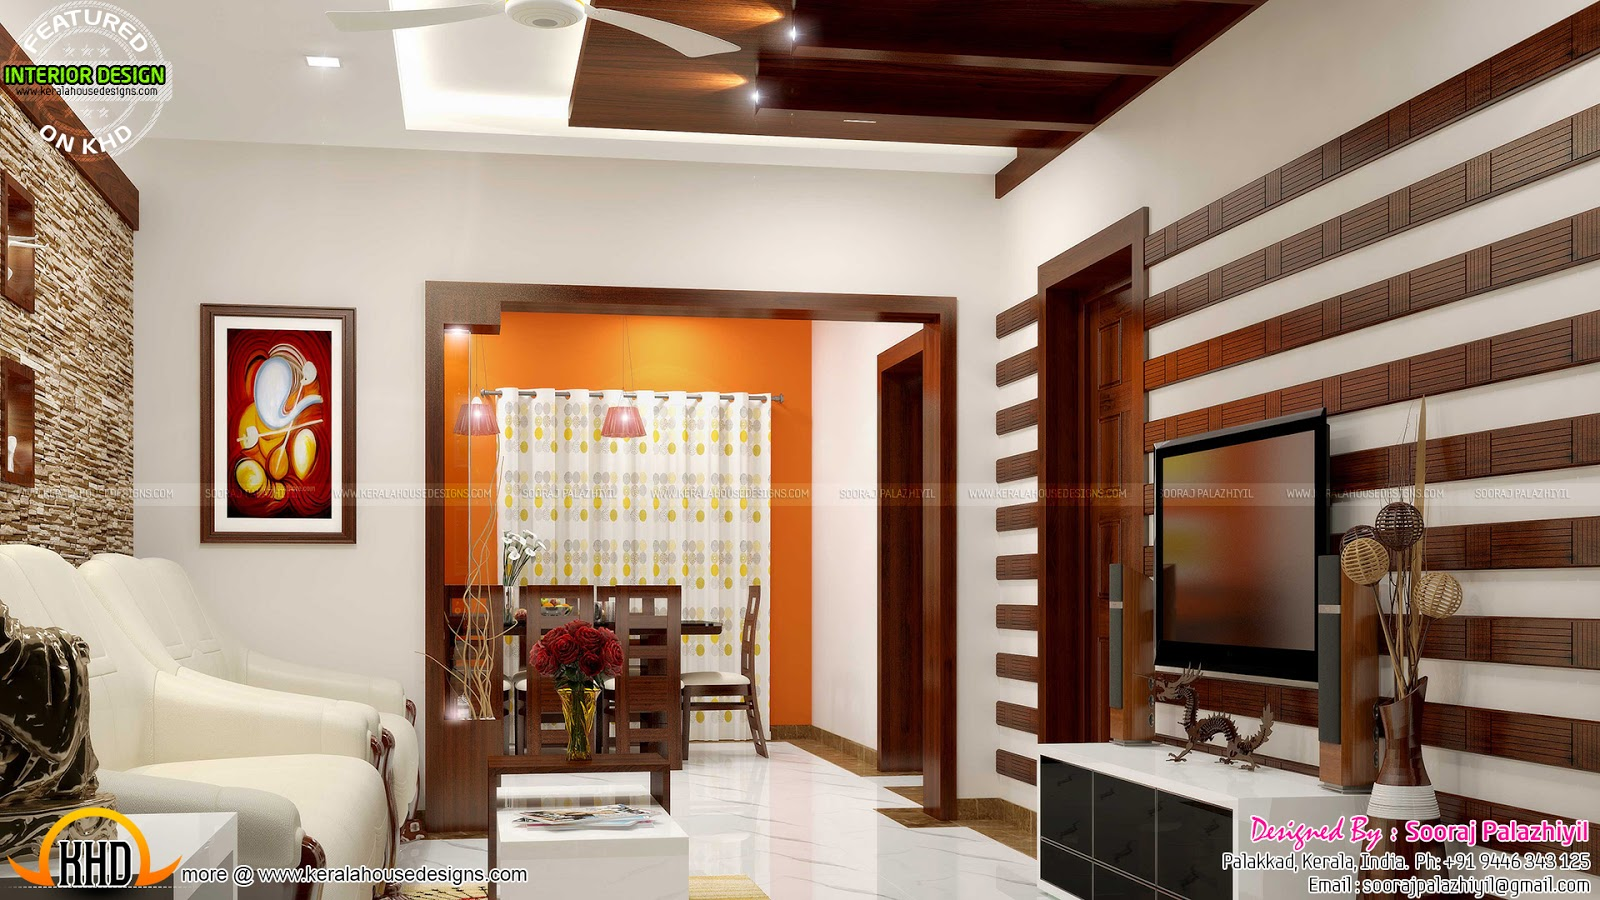 Living Room Designs Kerala Style modern design kerala home interior design ideas kerala home design